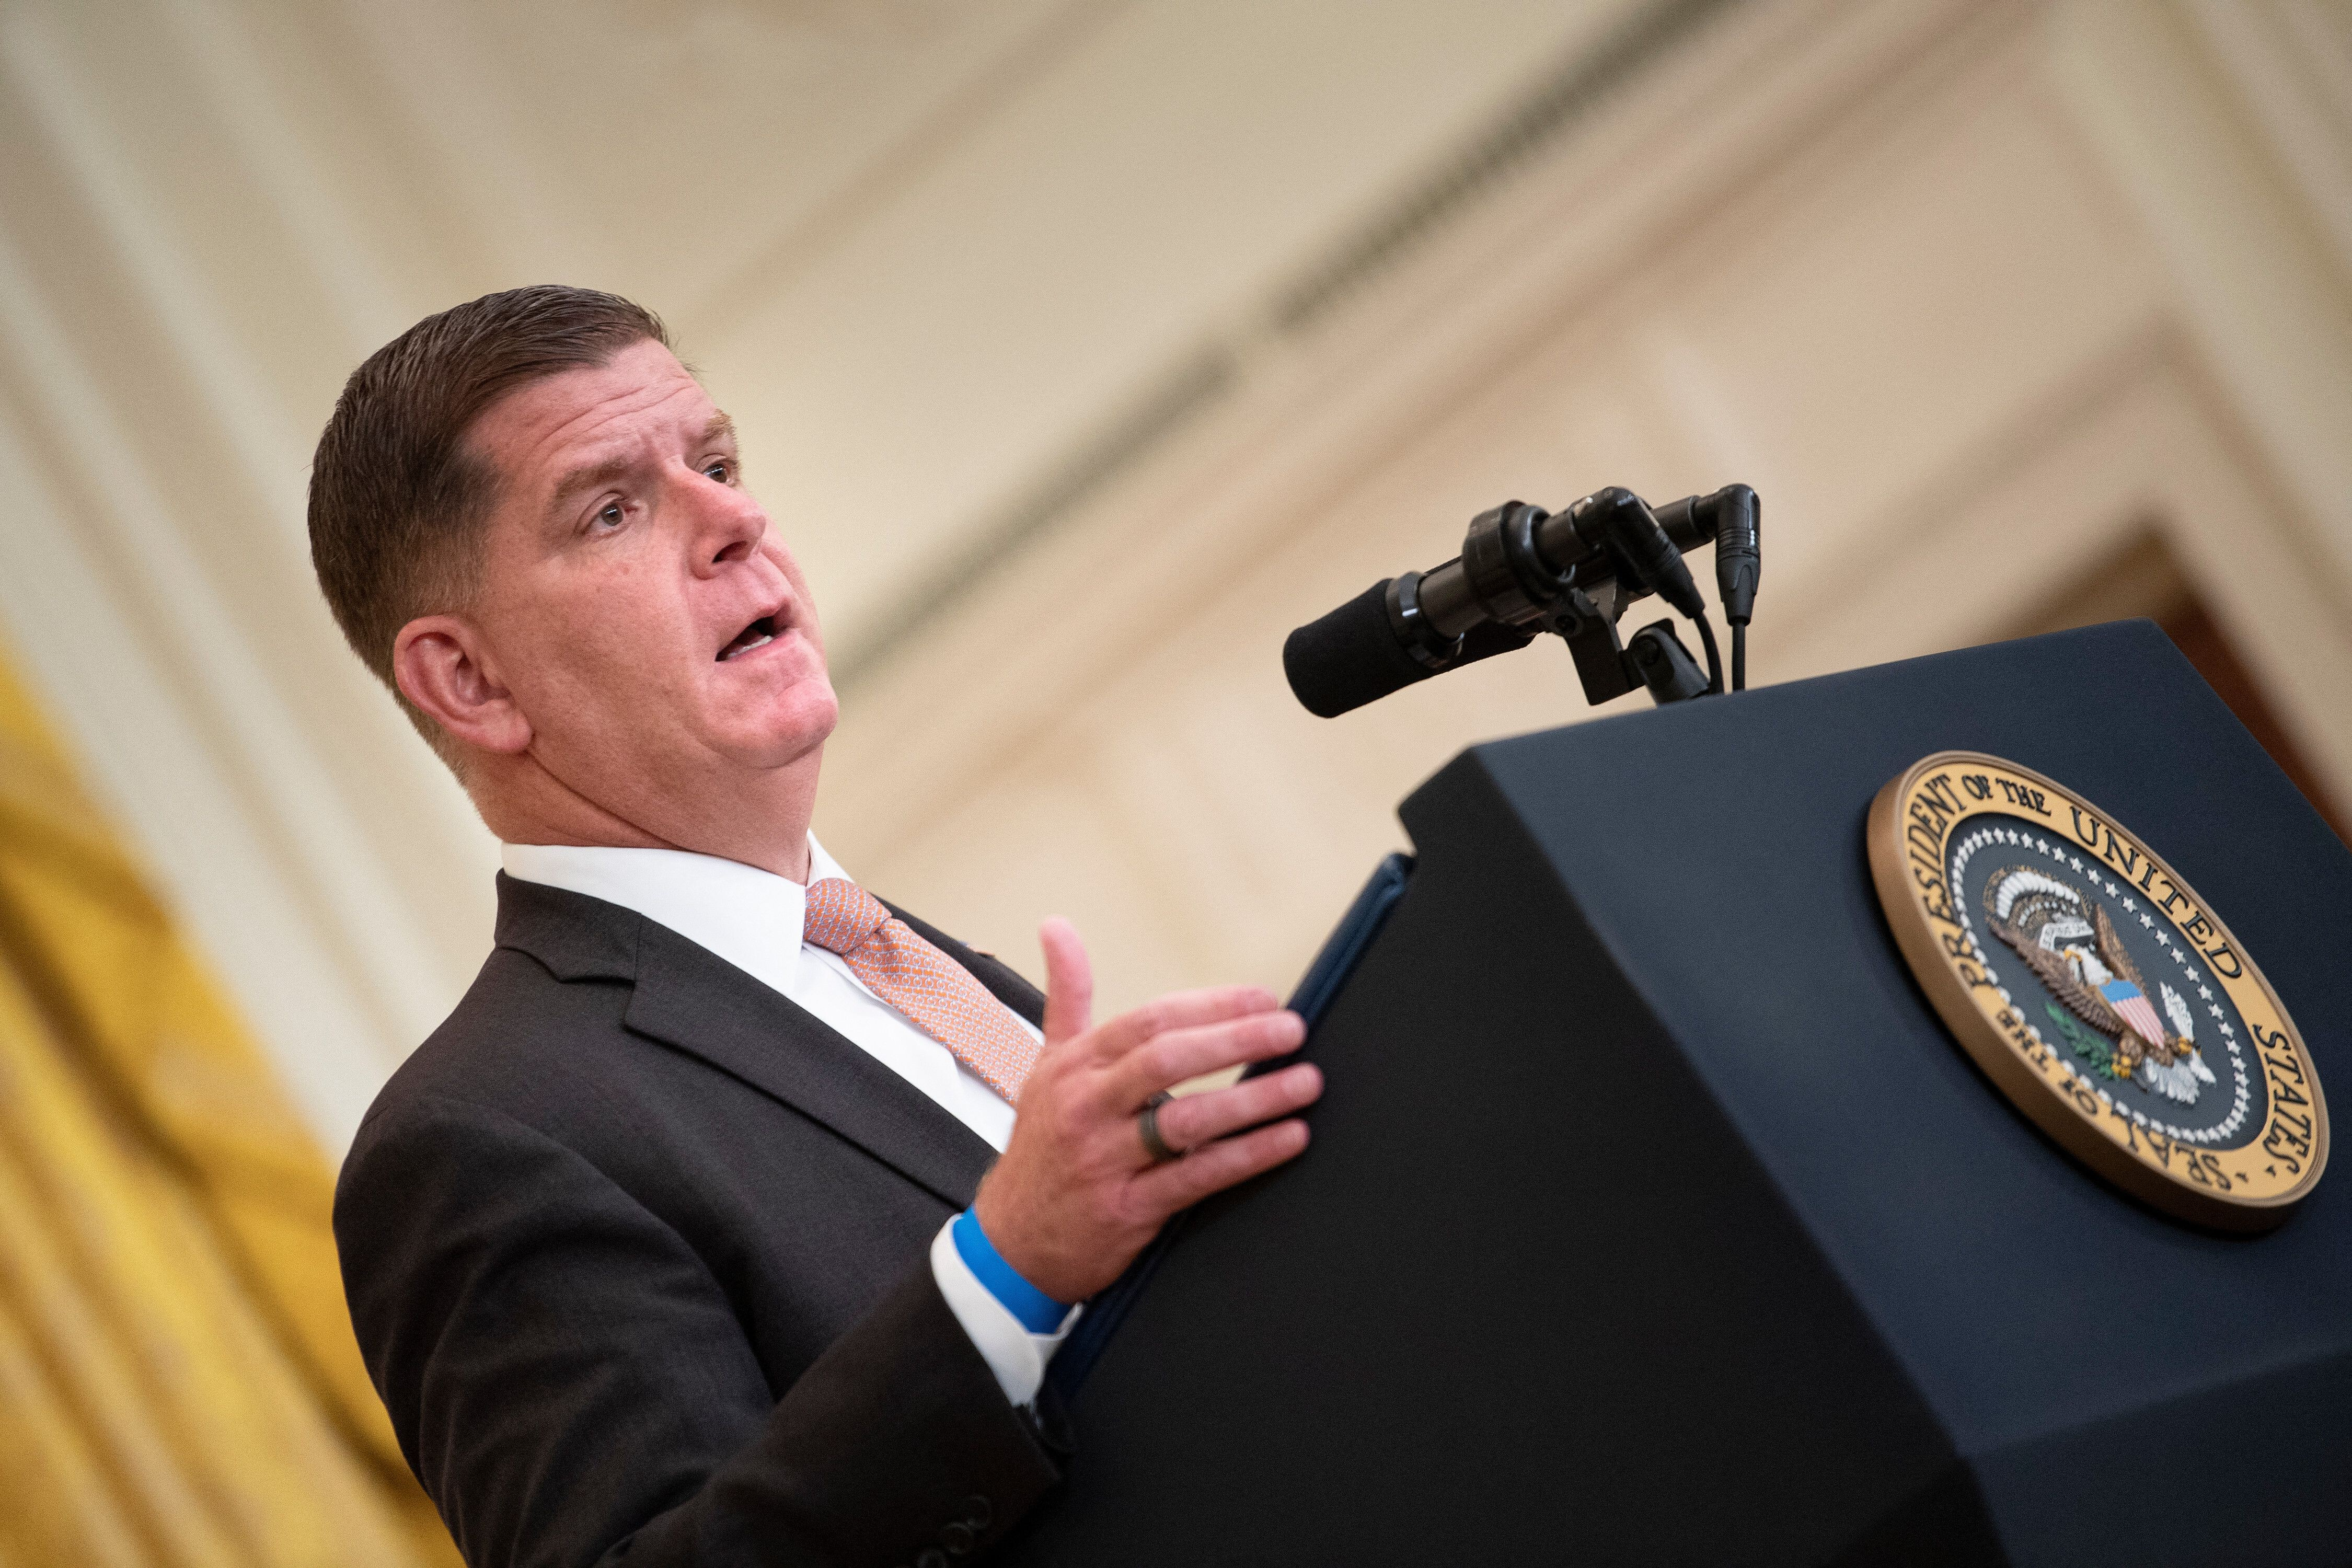 Labor Secretary Marty Walsh opens up about his sobriety as the nation faces addiction crisis during Covid-19 pandemic